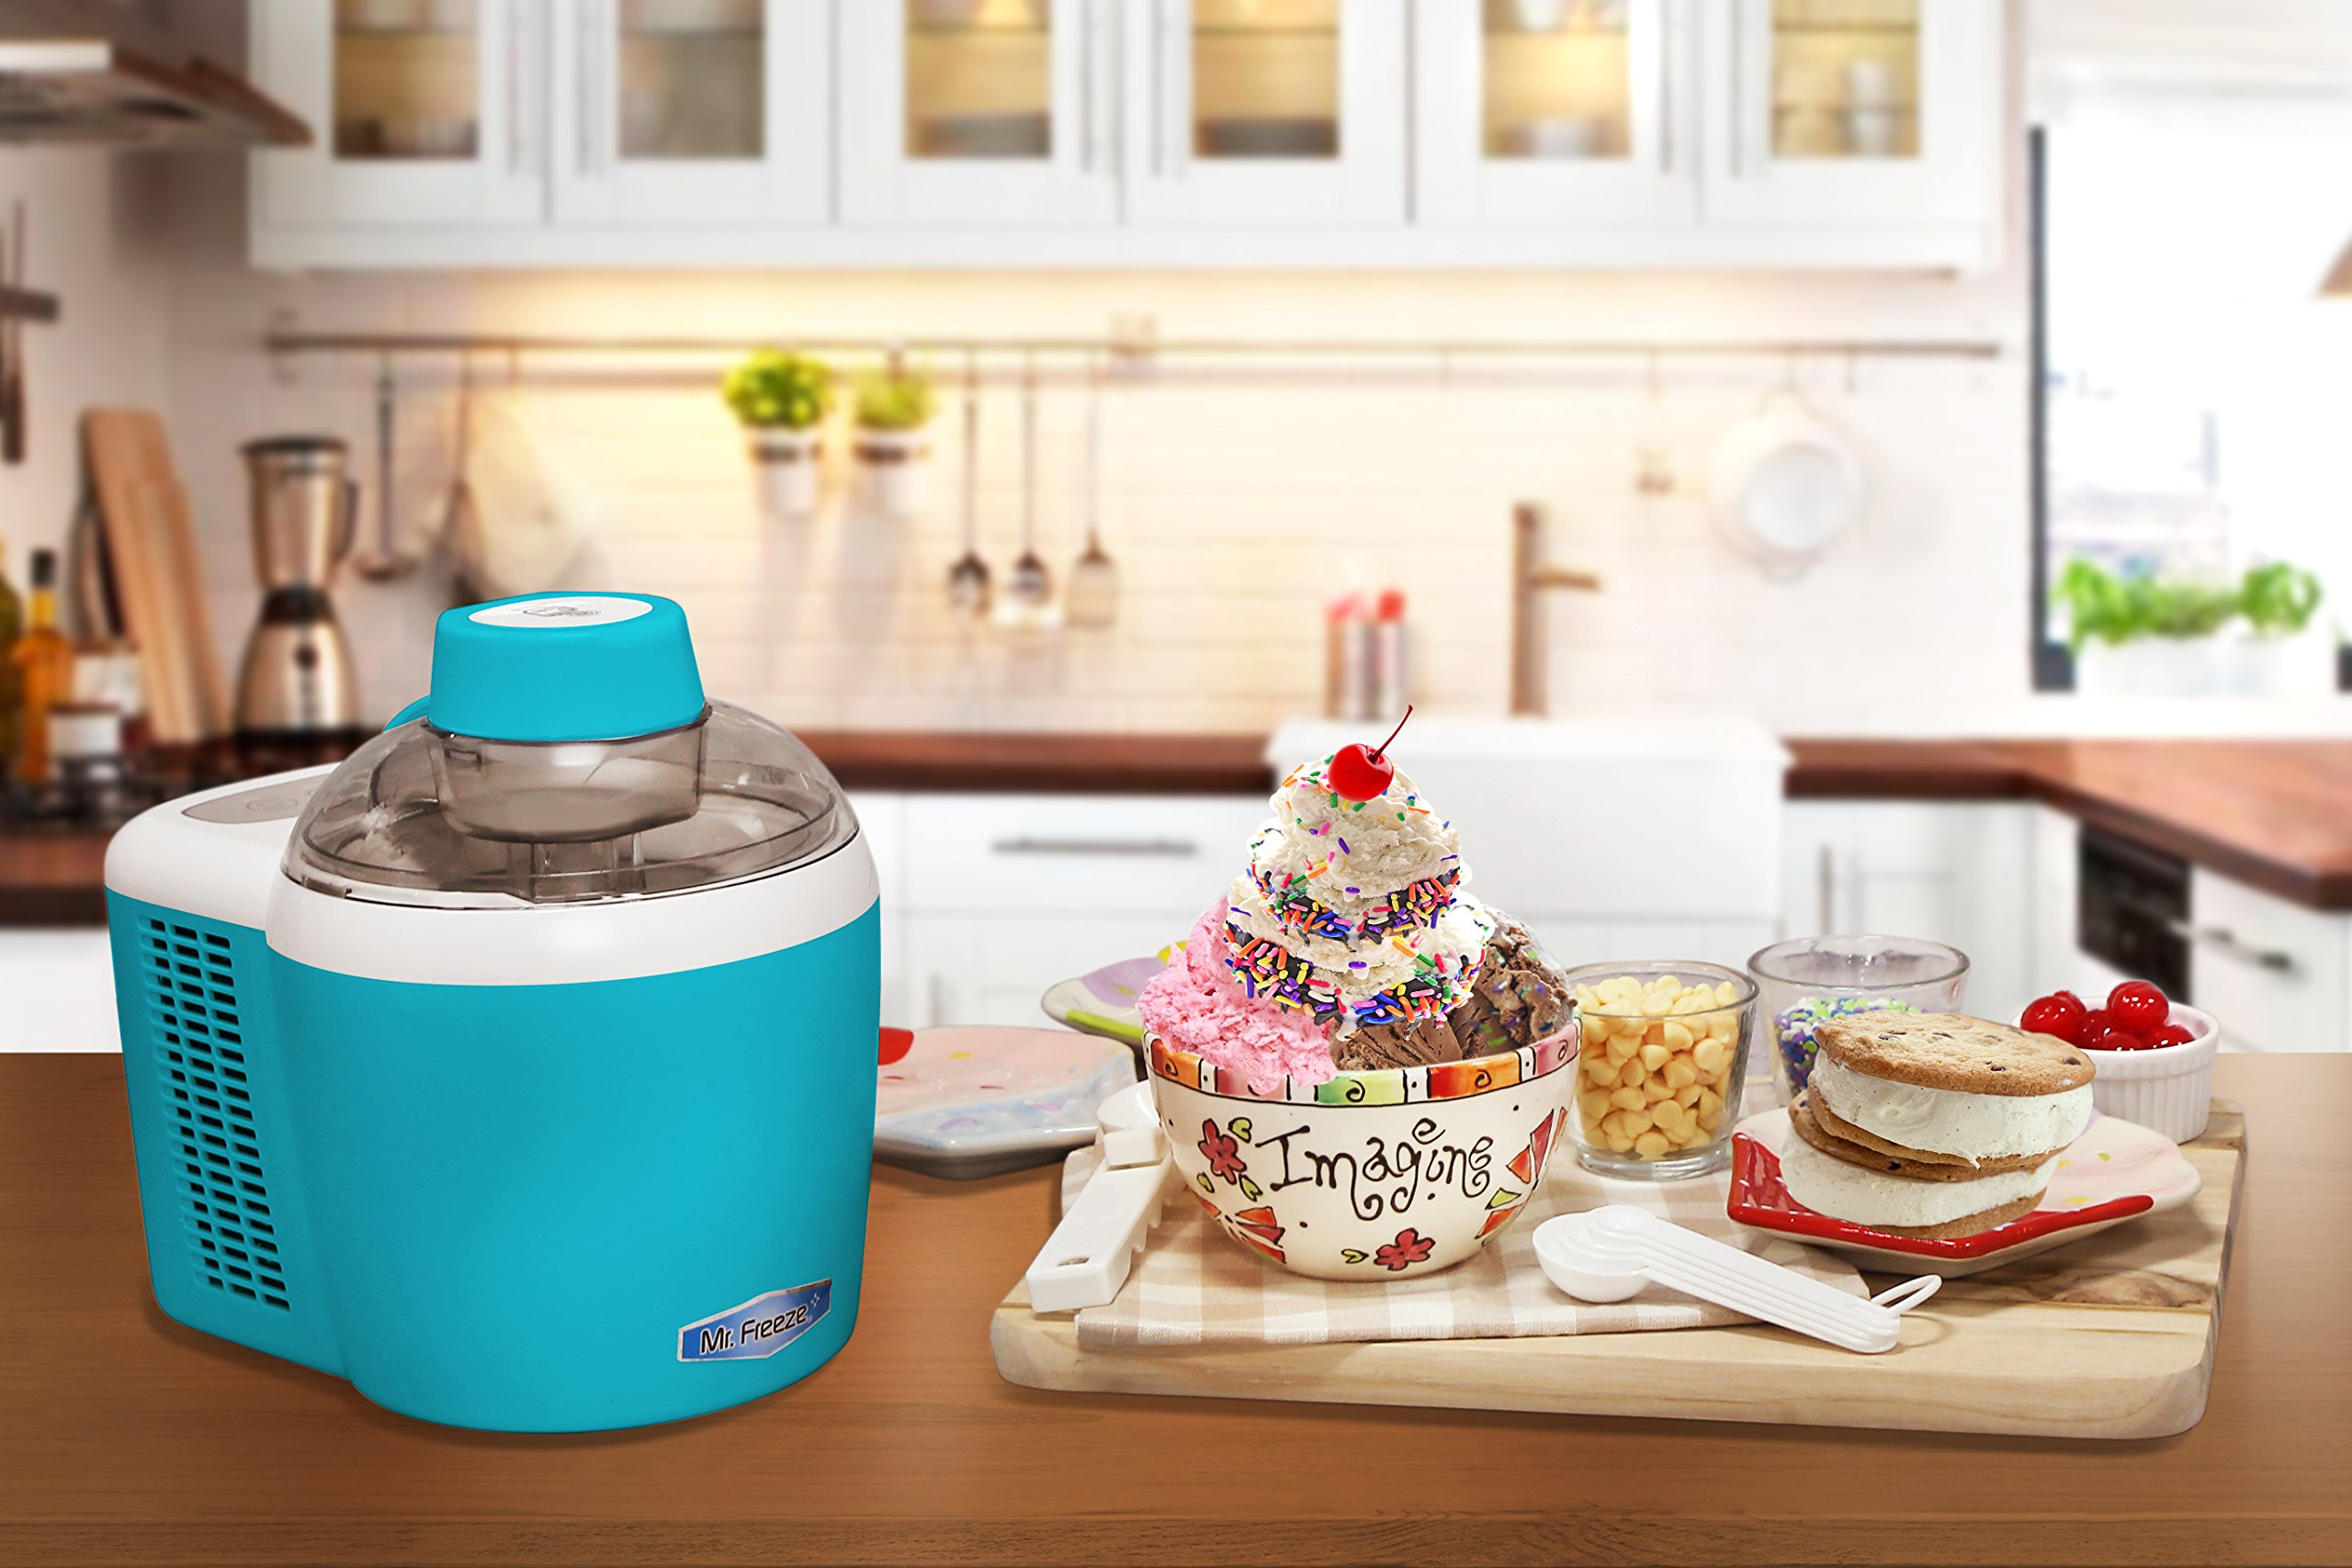 Mr. Freeze EIM-700T Self-Freezing Self-Refrigerating Ice Cream Maker, 1.5 Pint, Turquoise by Maxi-Matic (Image #7)